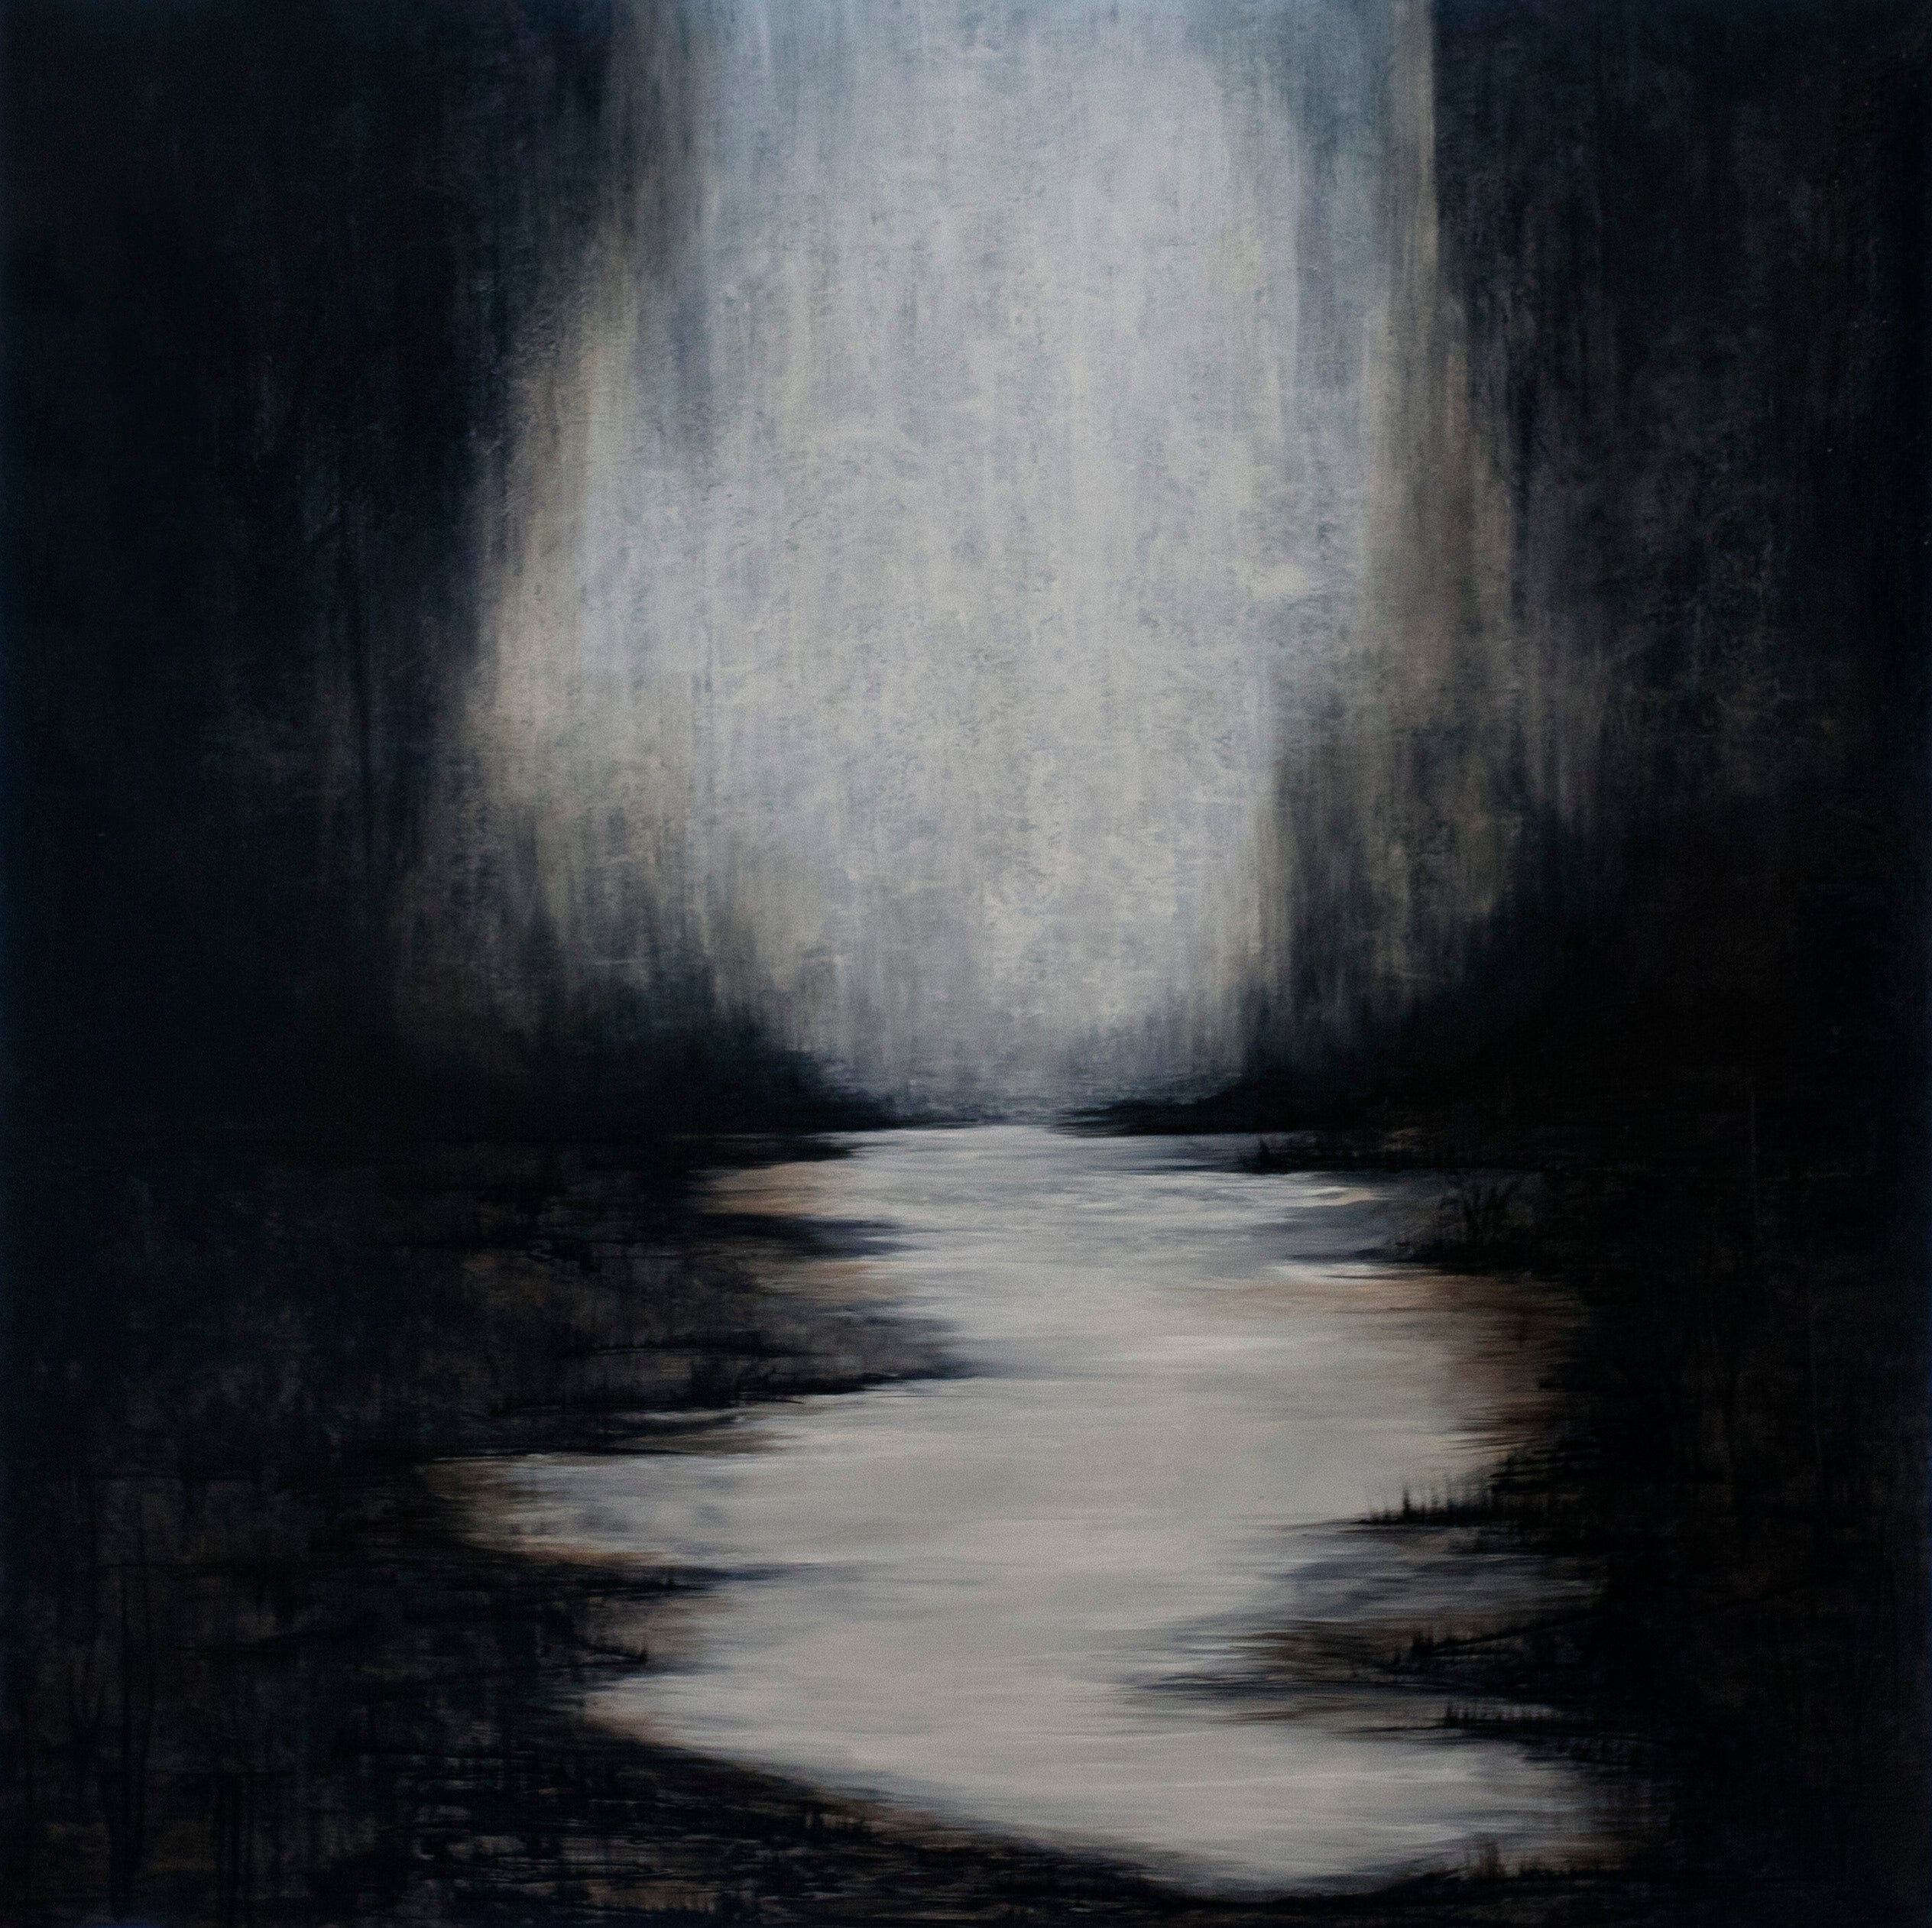 A moody and haunting depiction of a bayou at night, painted in a monochromatic palette. The scene is full of historic references, folktales and myths.